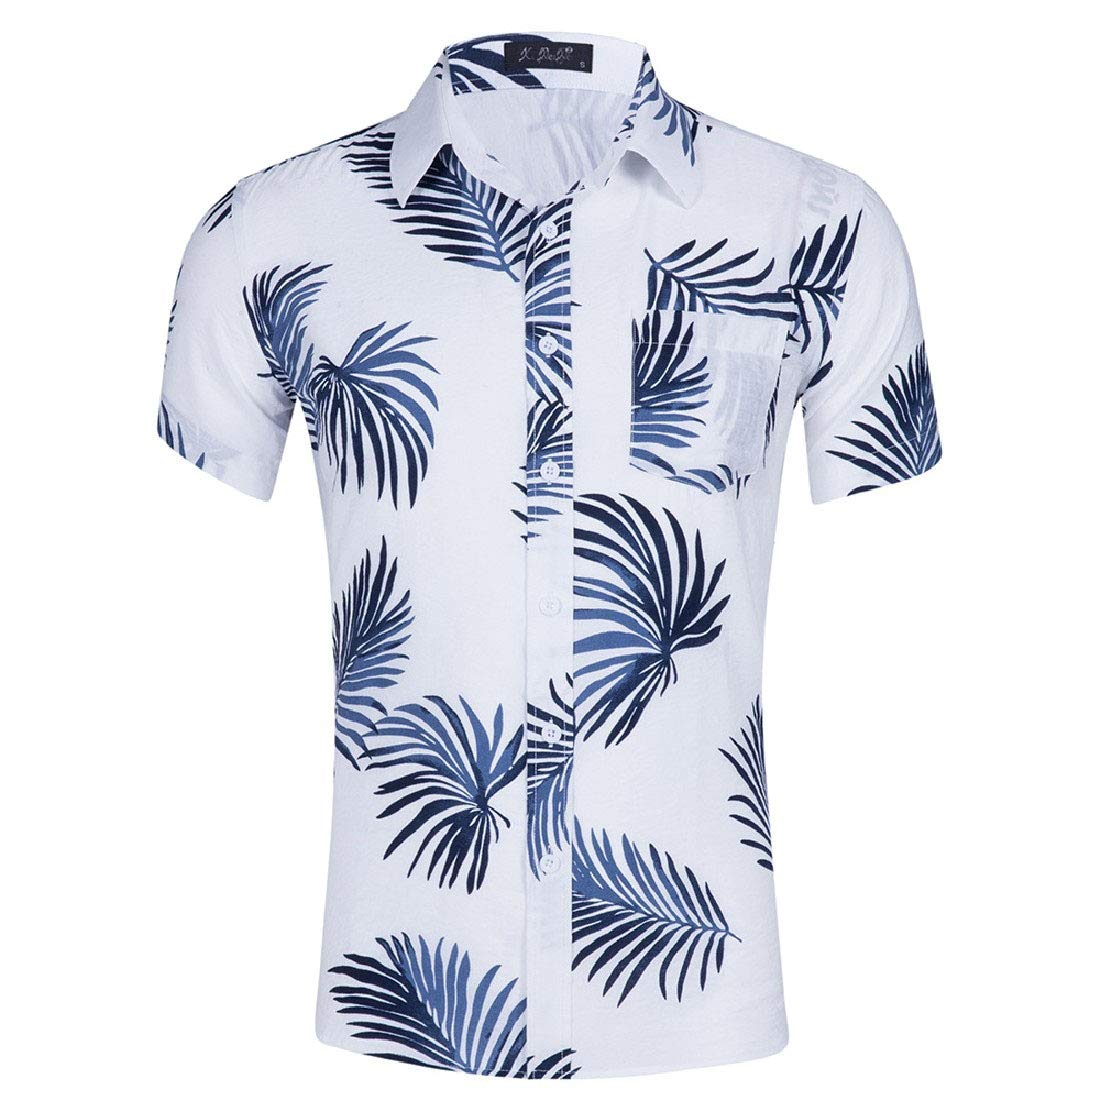 Highisa Mens Button Up Short Sleeve Printed Turn-Down Collar T-Shirts Shirts